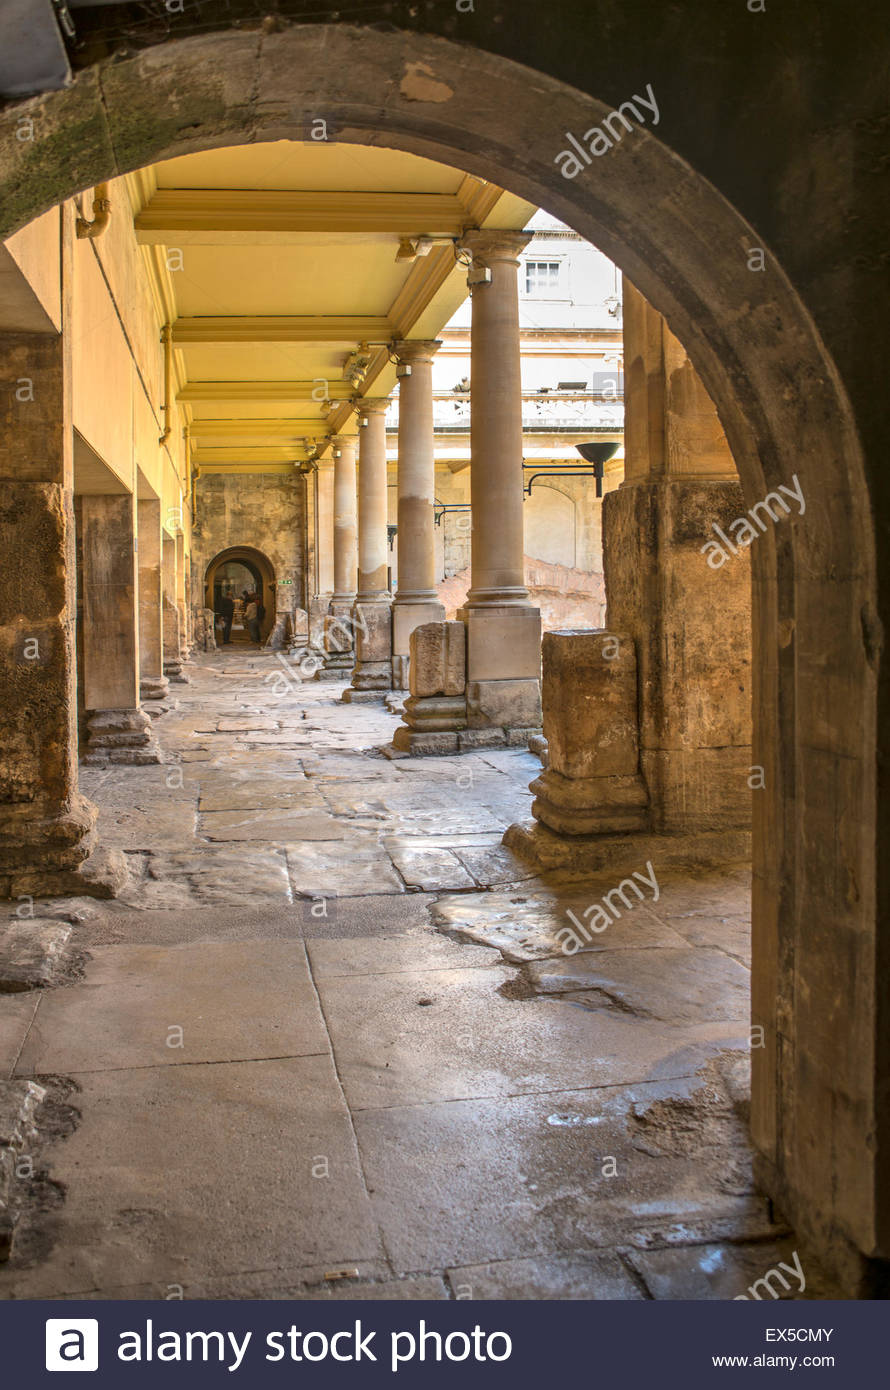 The Great Bath of the Roman Baths complex, a site of historical interest in the English city of Bath, Somerset, - Stock Image